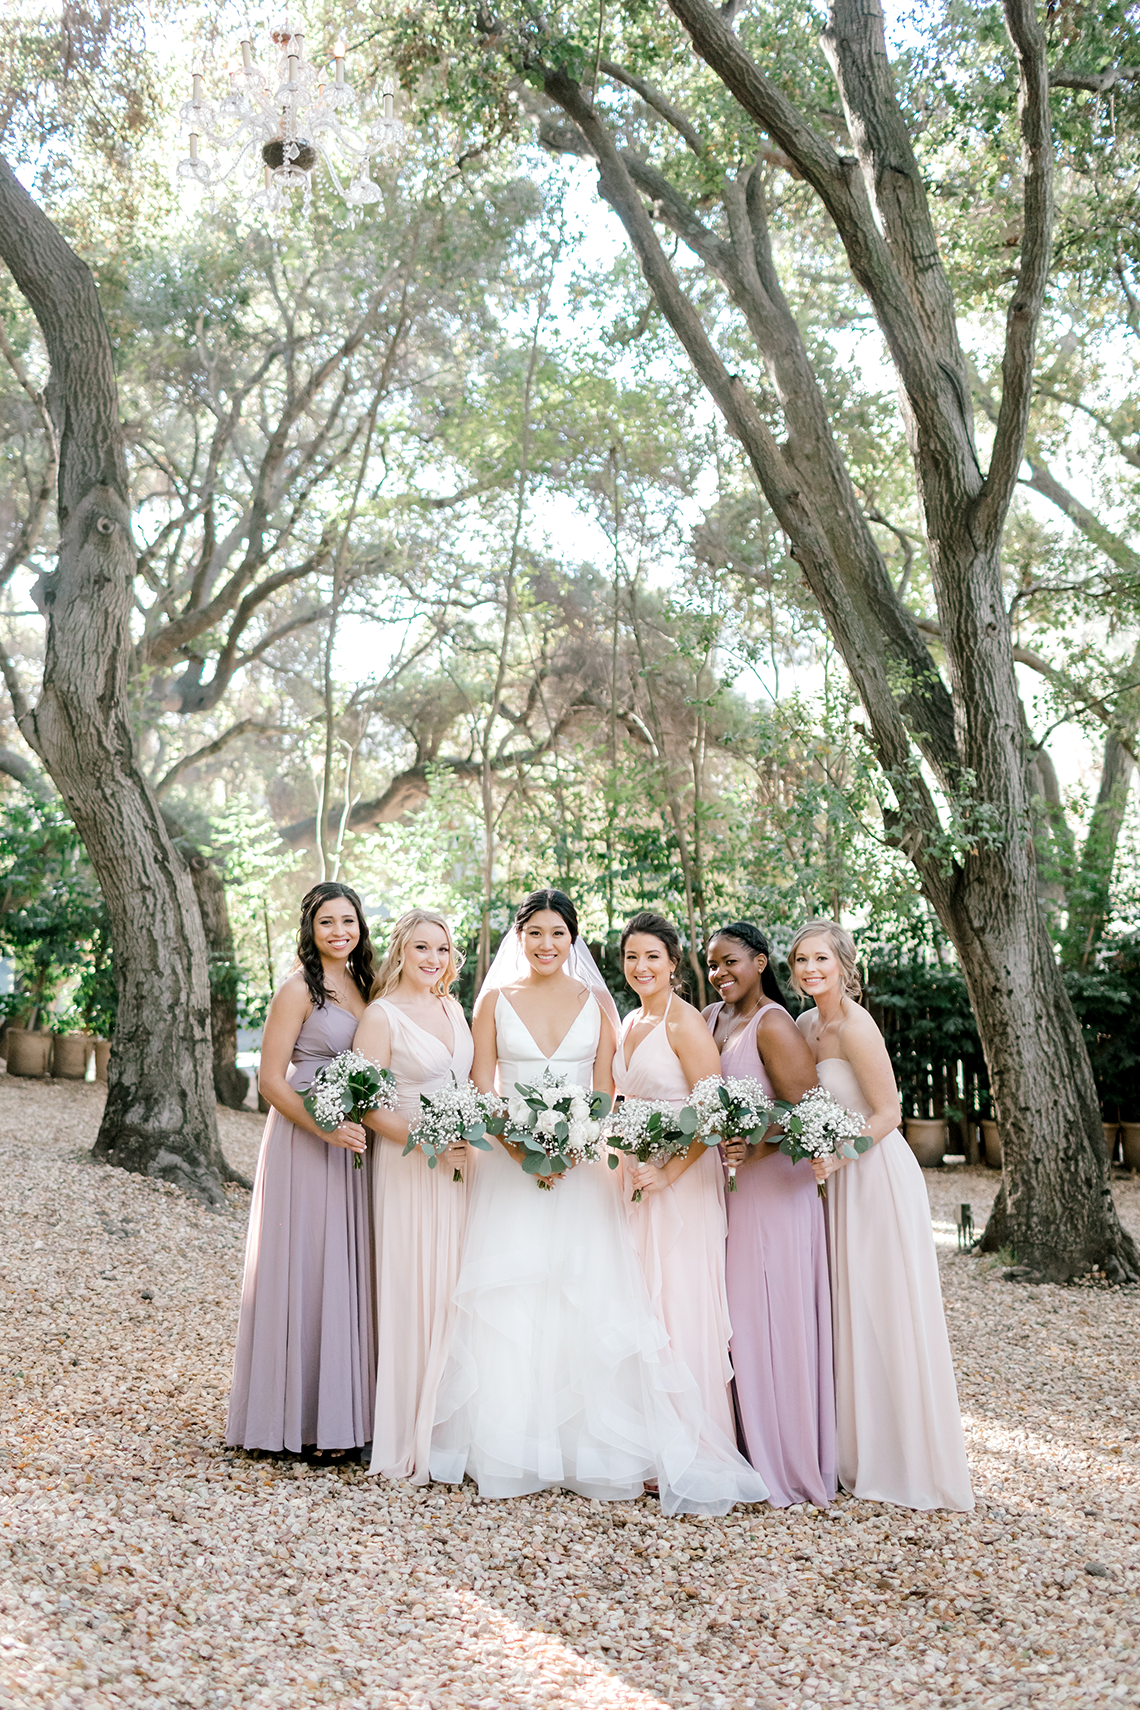 Rustic and Ethereal Calamigos Forest Wedding – Tracy Rinehart 7